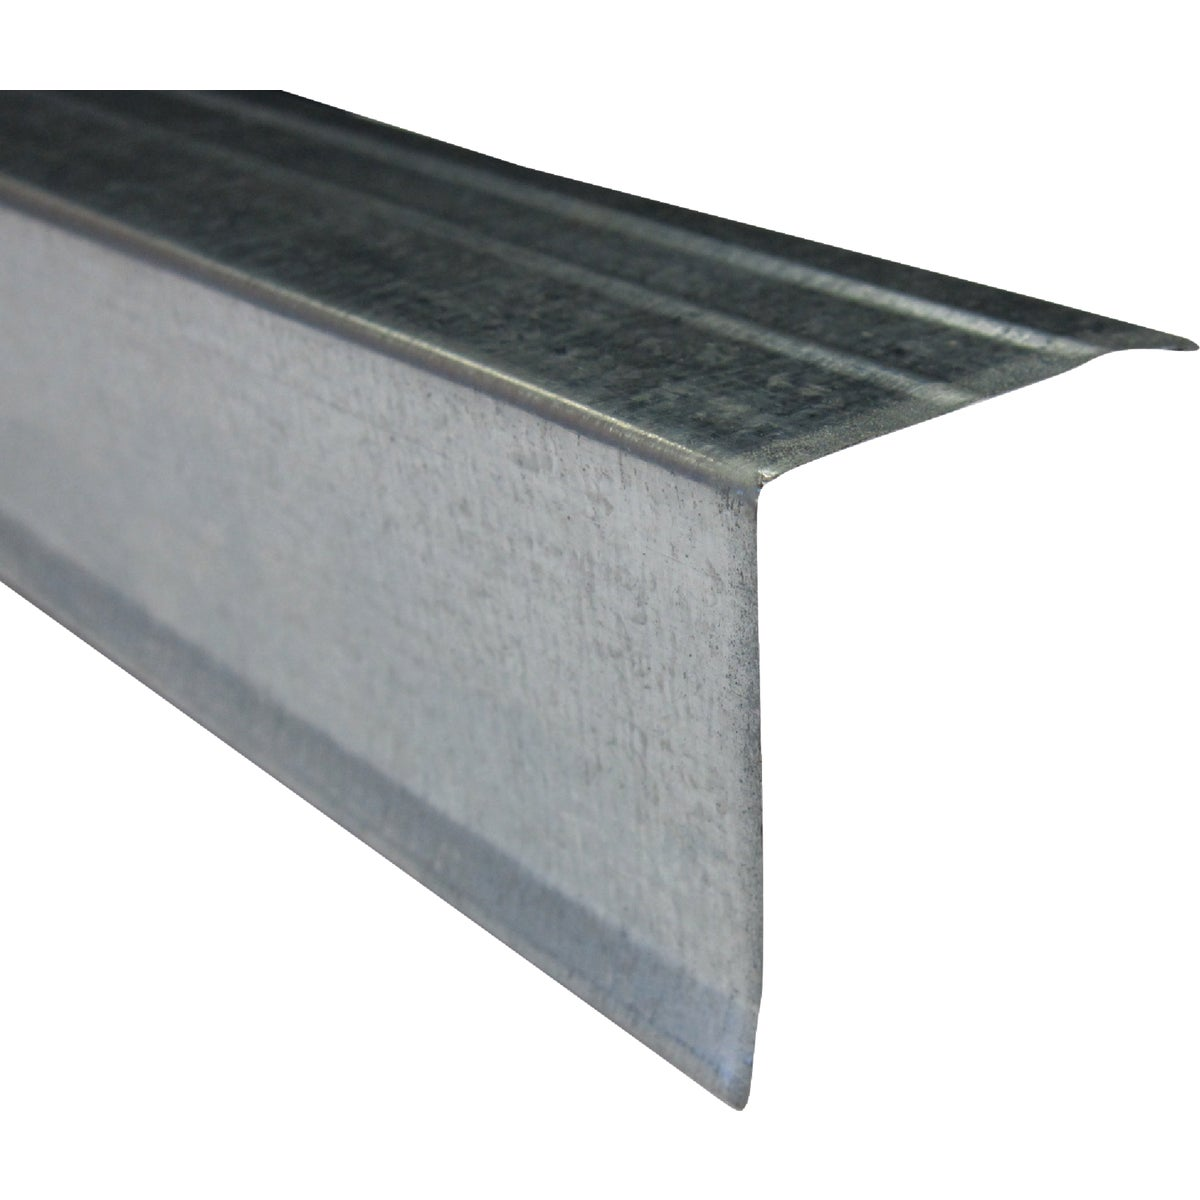 "3""X10' STYLE A ROOF EDGE - 32008-GV10 by Klauer Mfg Co"